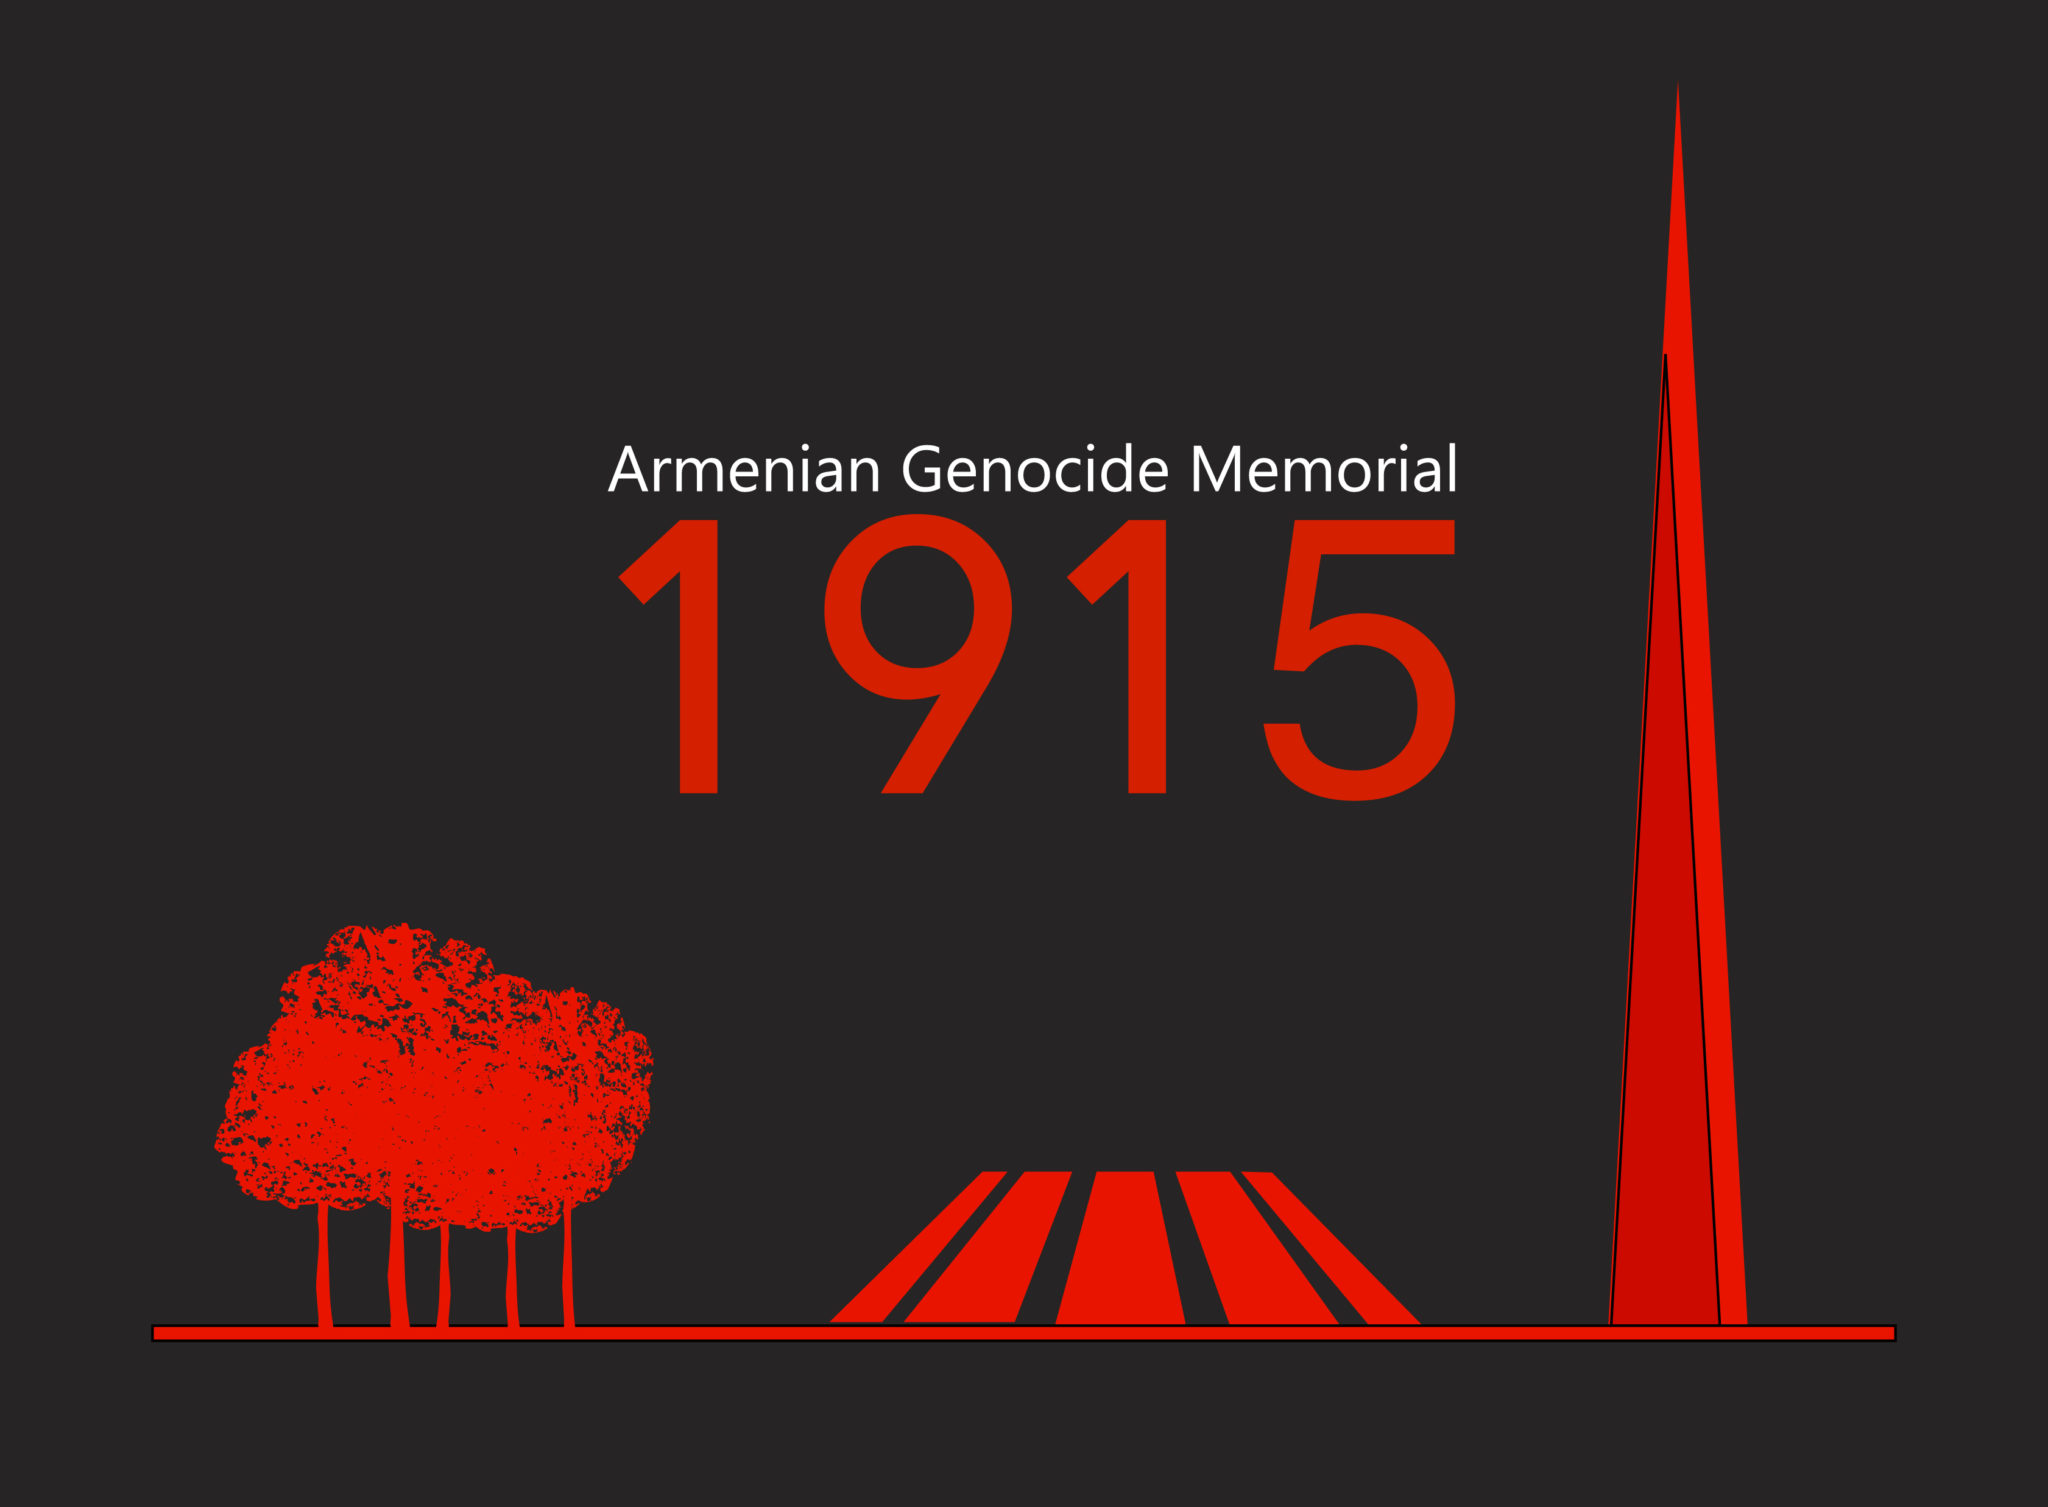 Top 10 Things You Should Know about the Armenian Genocide. ListLand.com